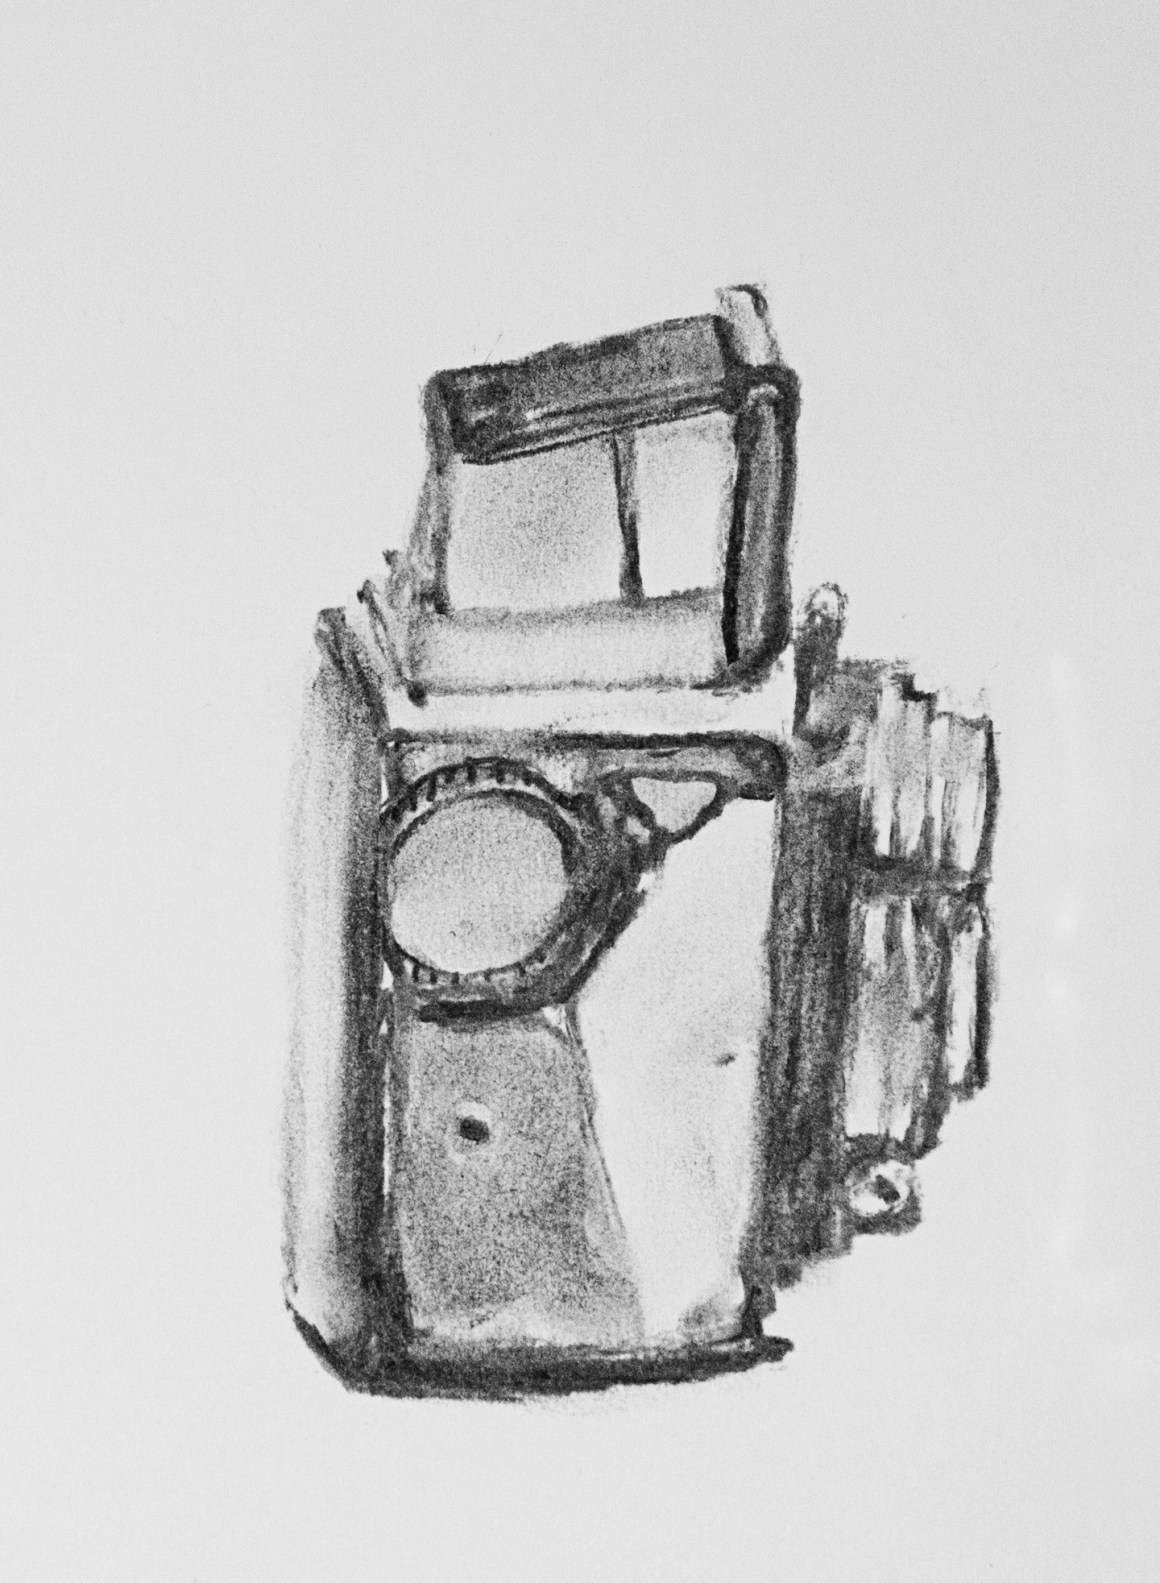 Coffee Sketch #2, created 1/12/16.  Baby Rolleiflex, 1957.